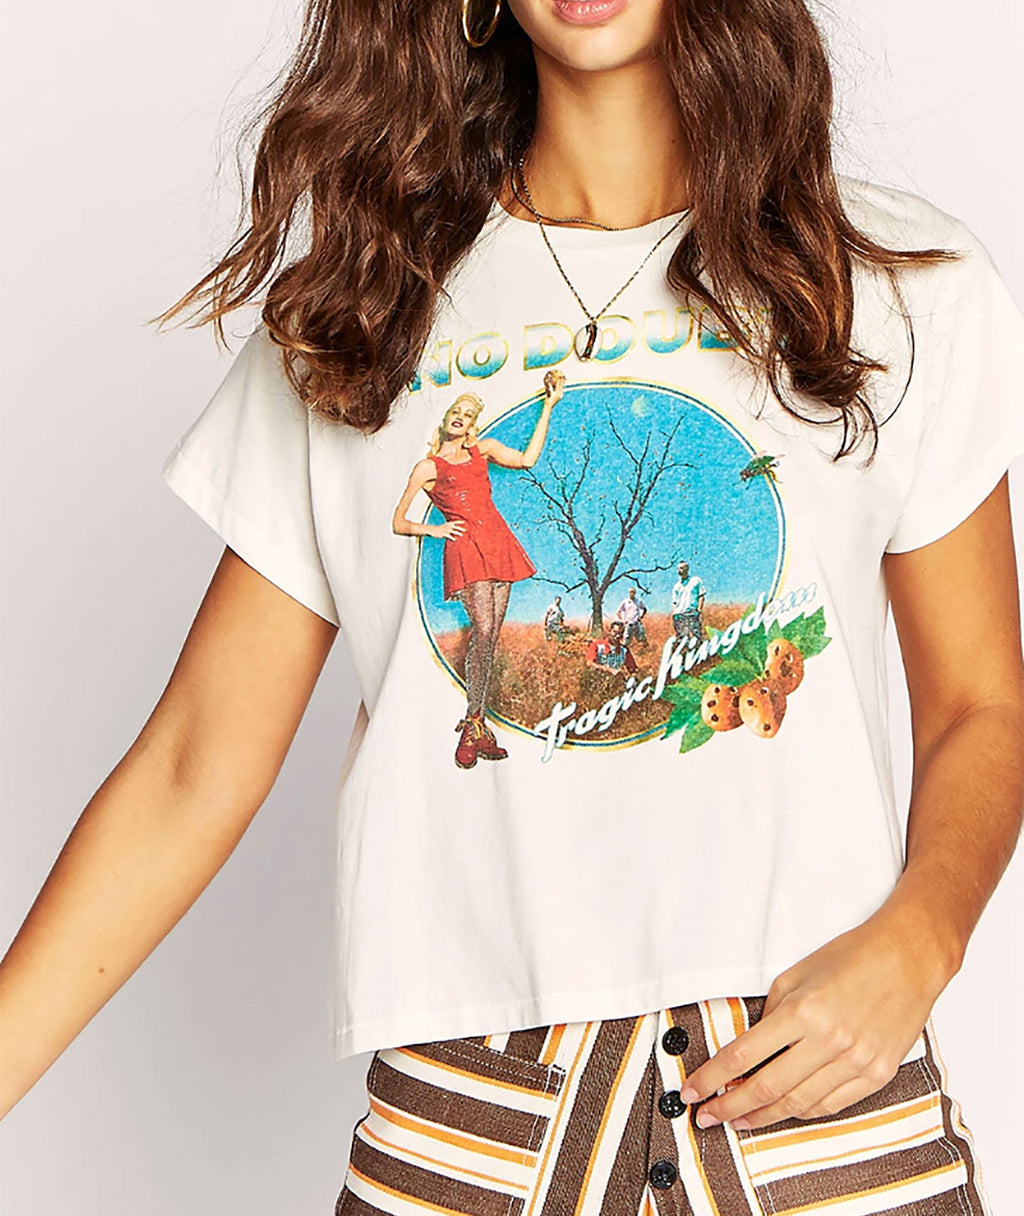 Daydreamer Women Tragic Kingdom Tee